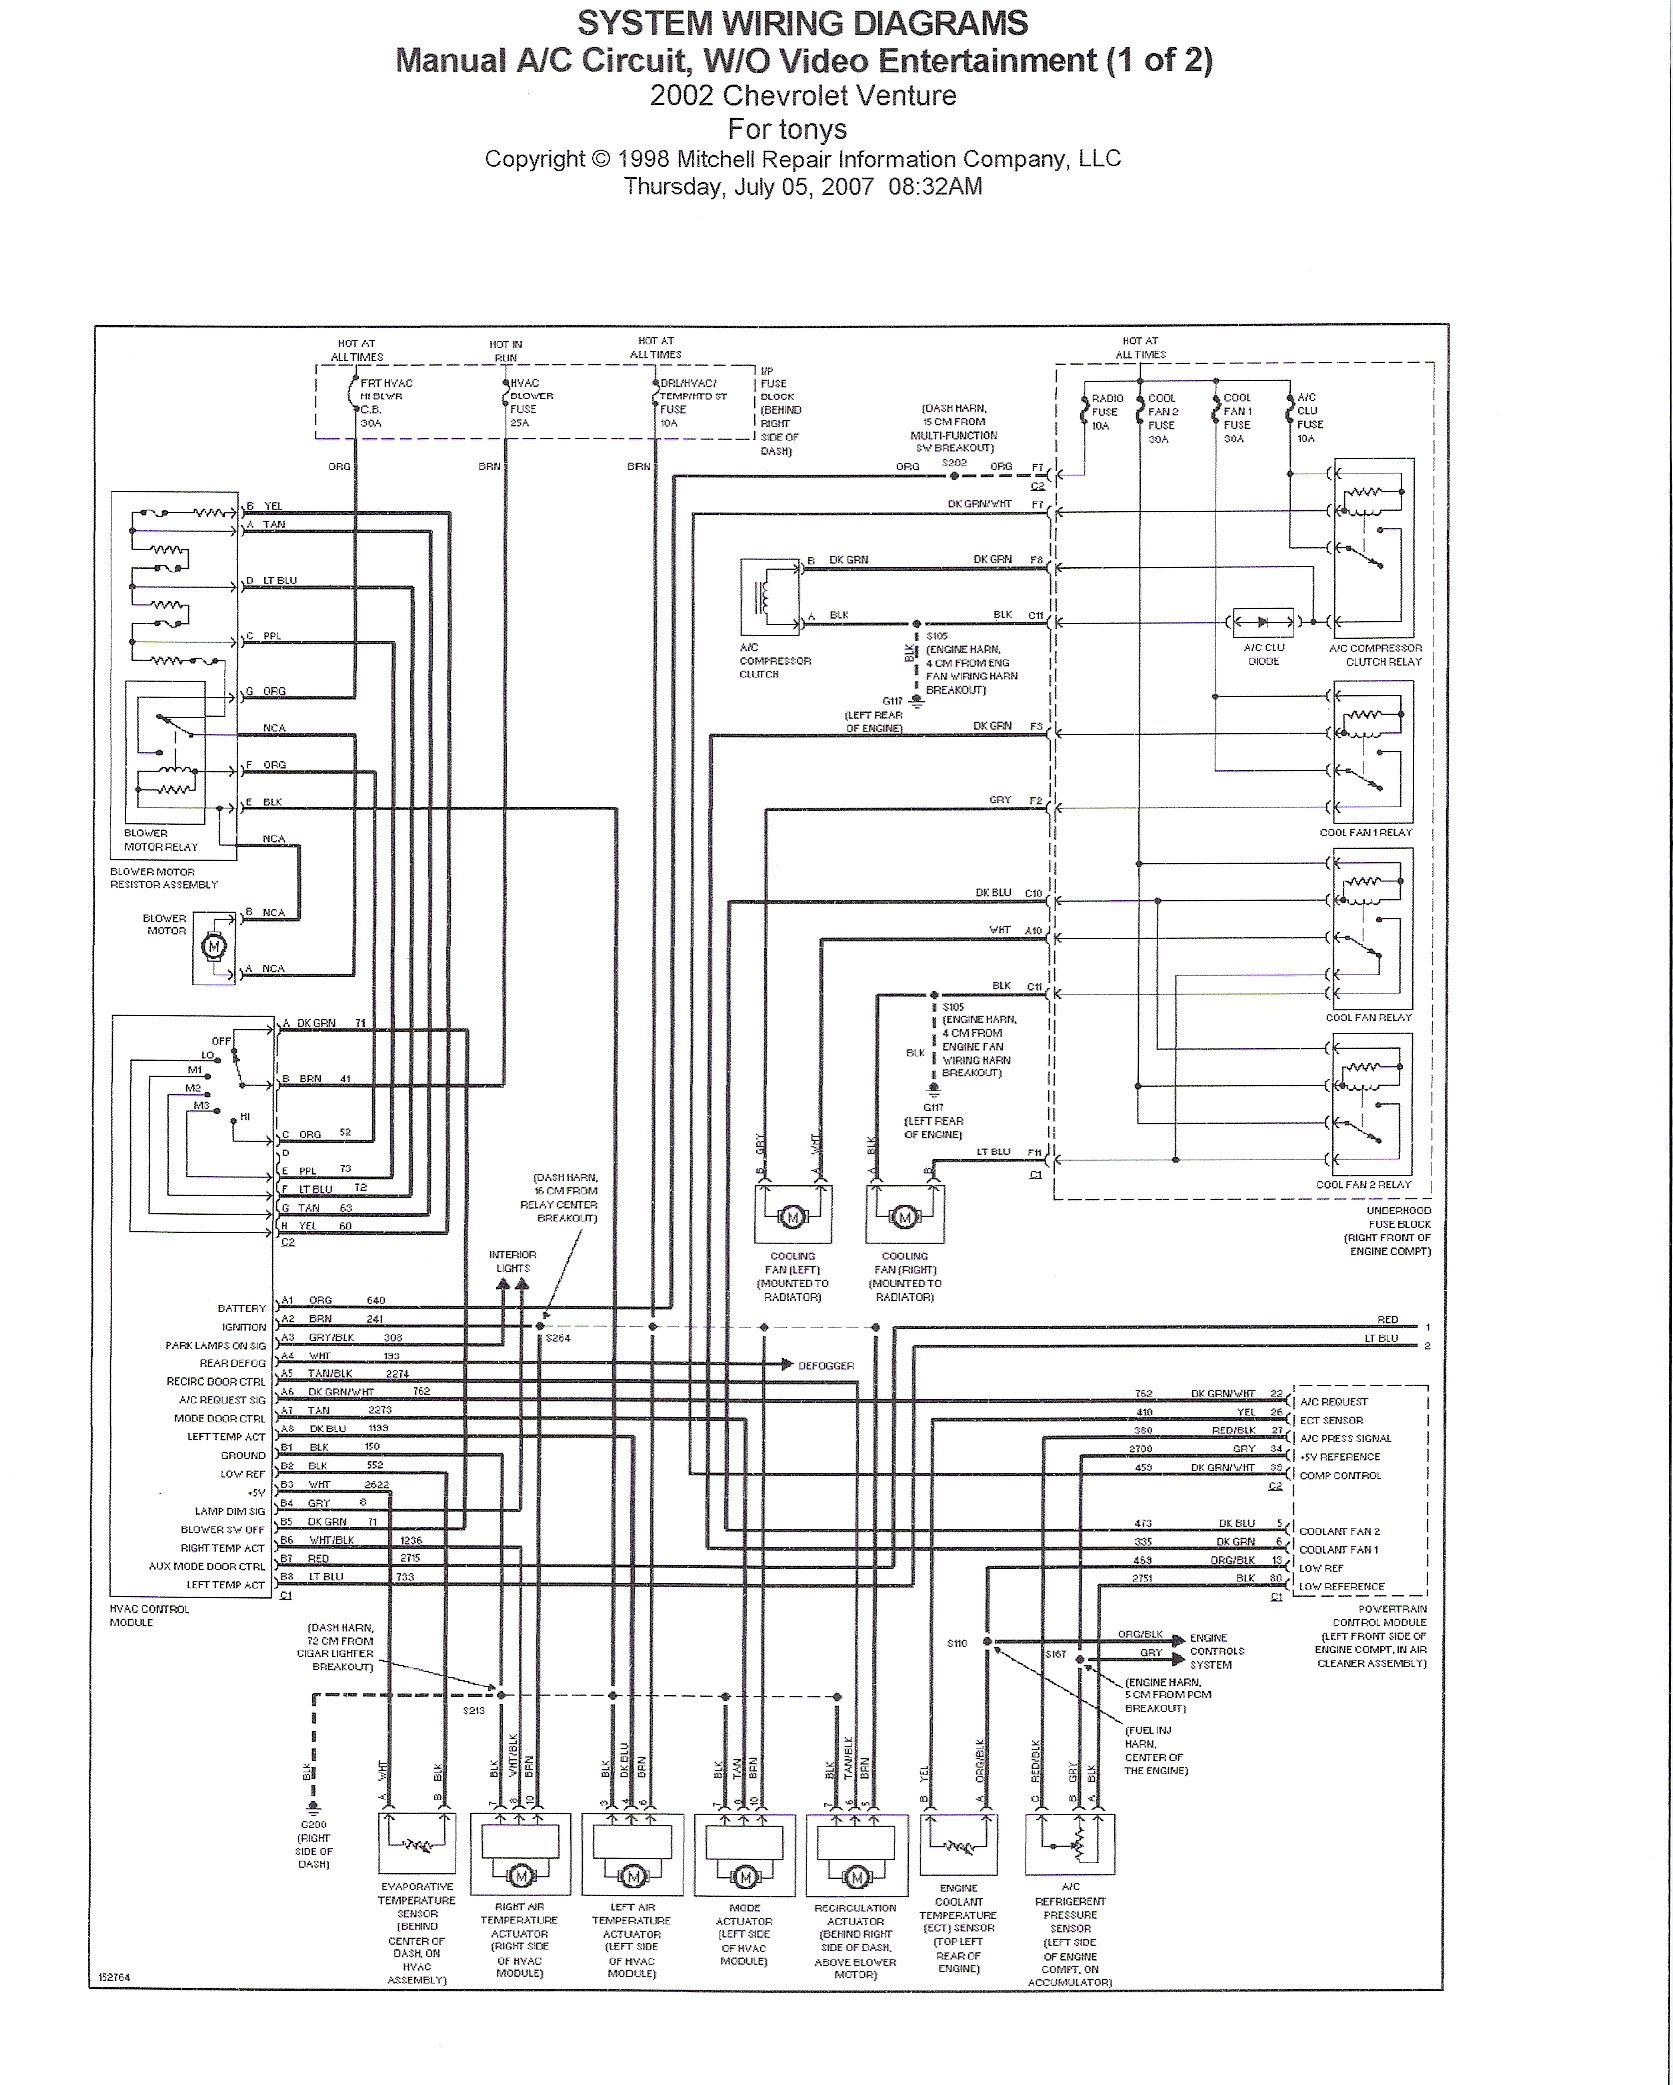 02 chevy venture wiring diagram